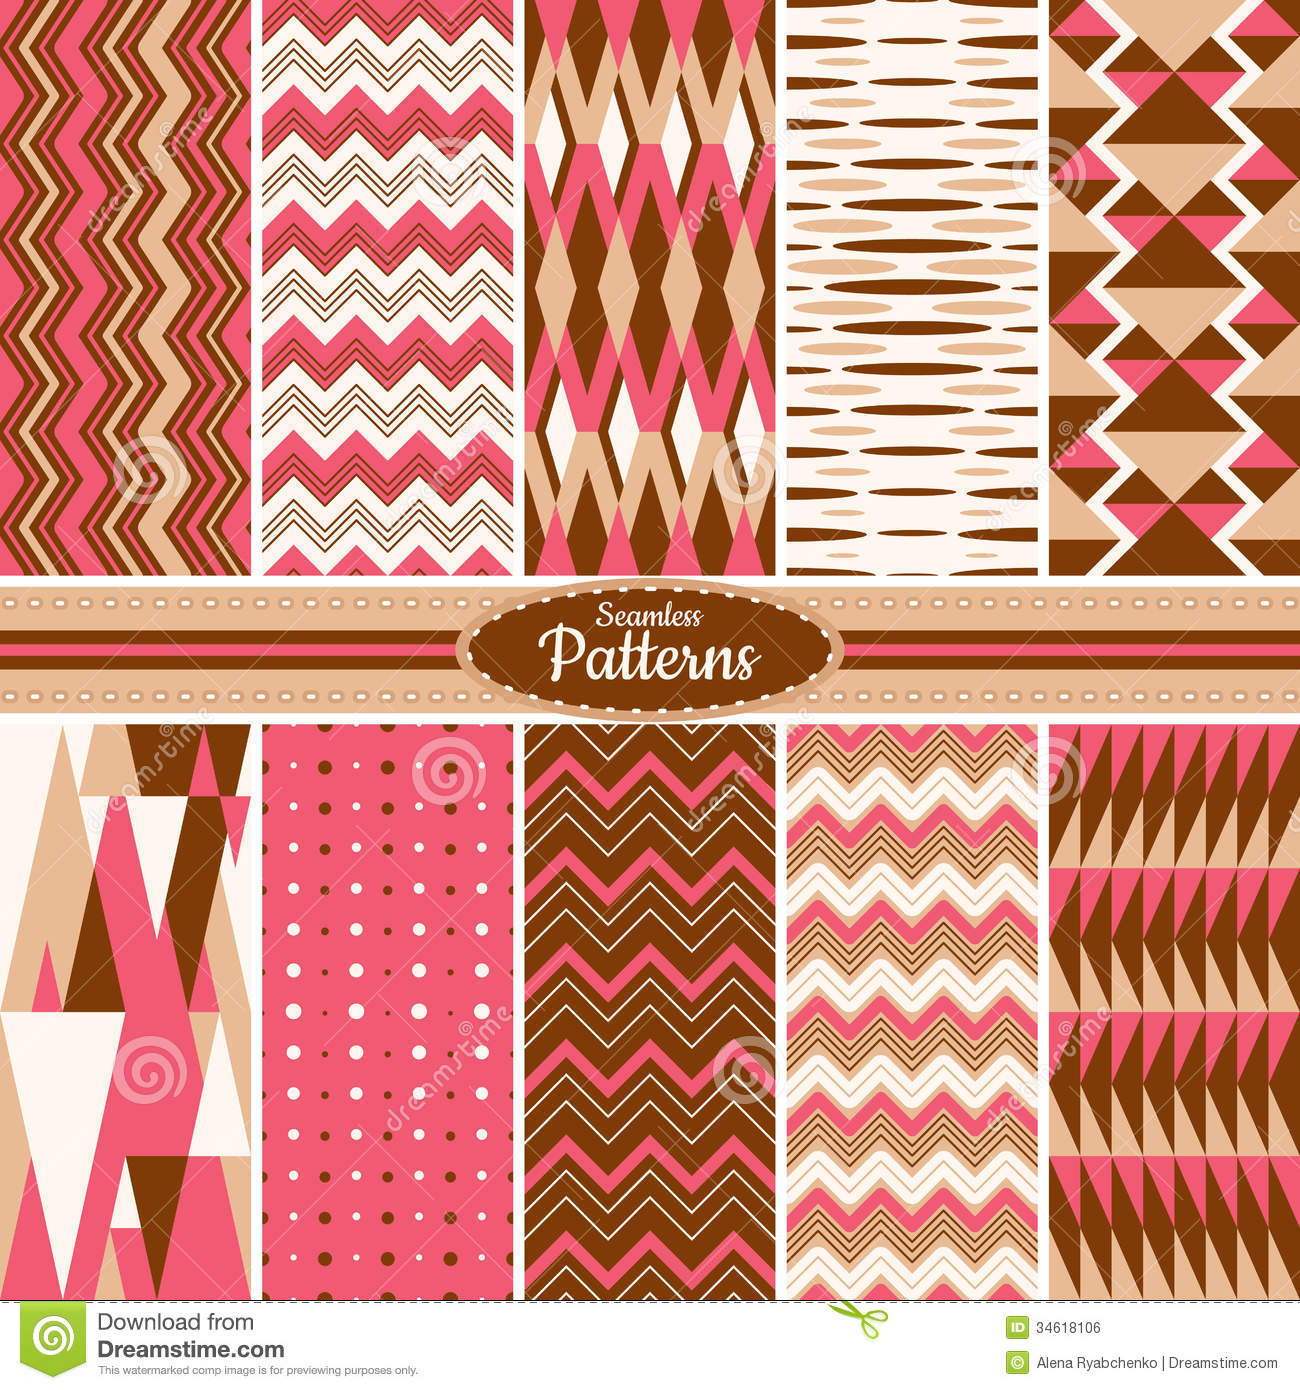 Wallpapers In Home Interiors: Collection Of Seamless Pattern Backgrounds Royalty Free